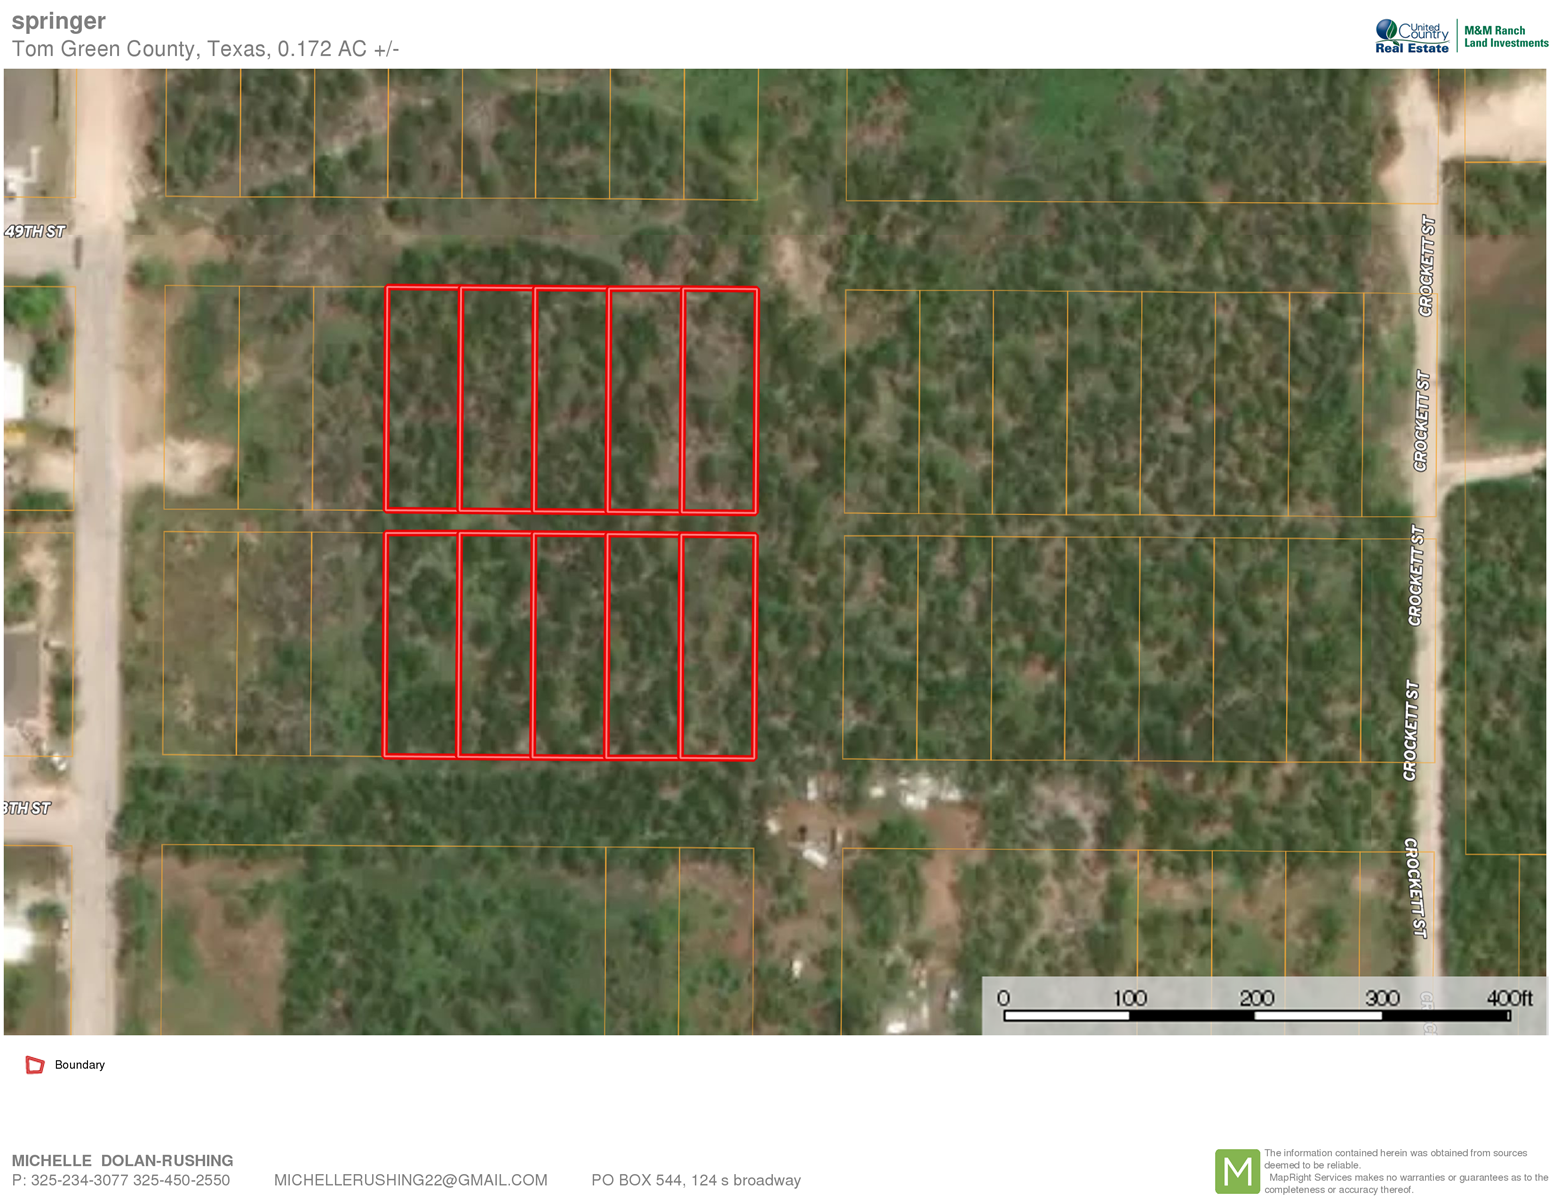 Residential Lots in Tom Green County for sale